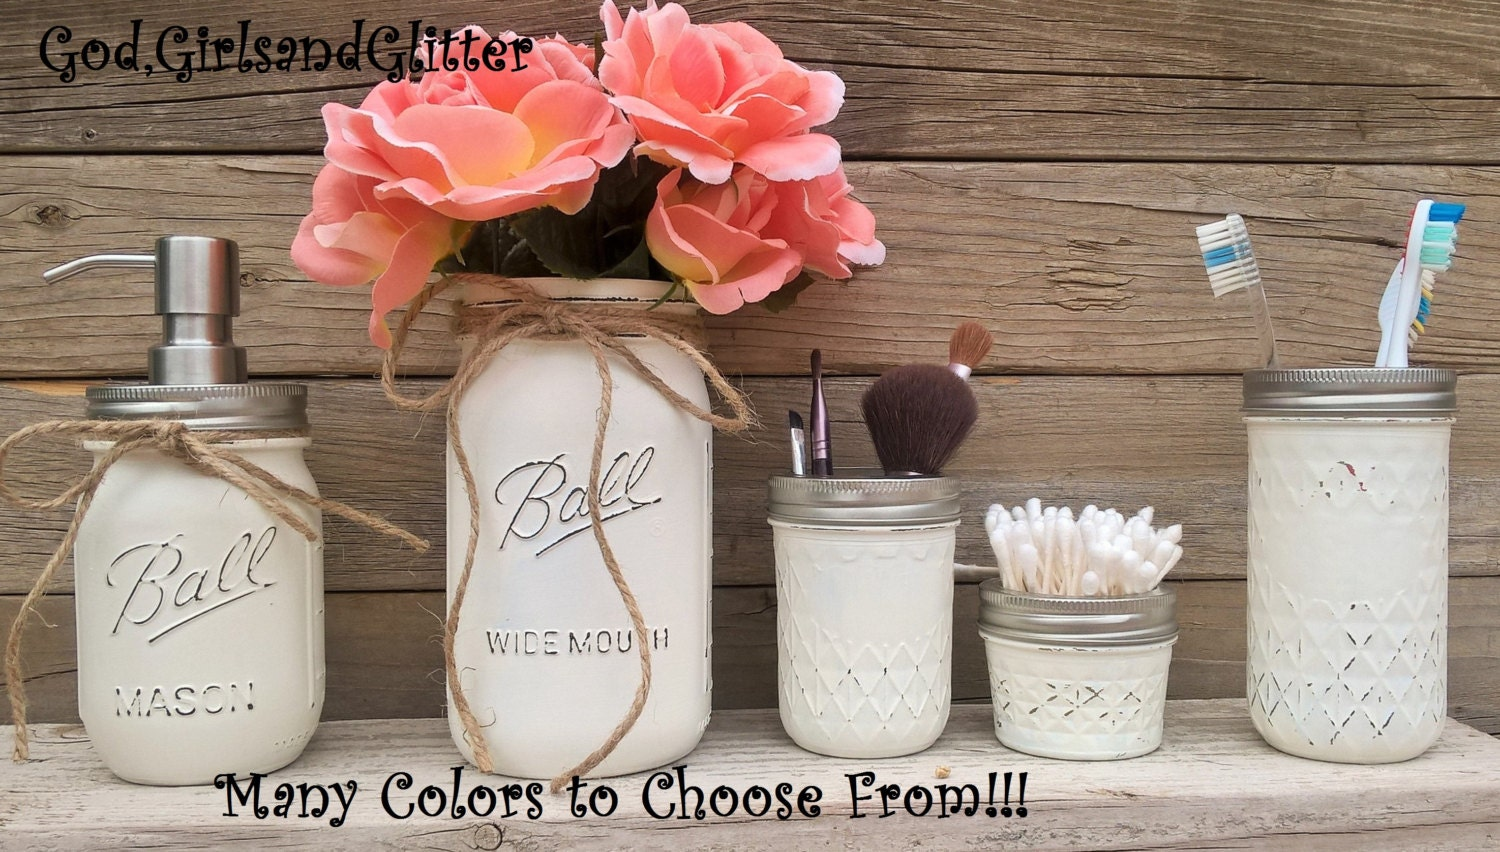 Rustic beach themed bathroom - Country Bathroom Decor Mason Jar Bathroom Set Rustic Bathroom Decor Country Chic Bathroom Decor Beach Bathroom Decor Housewarming Rustic